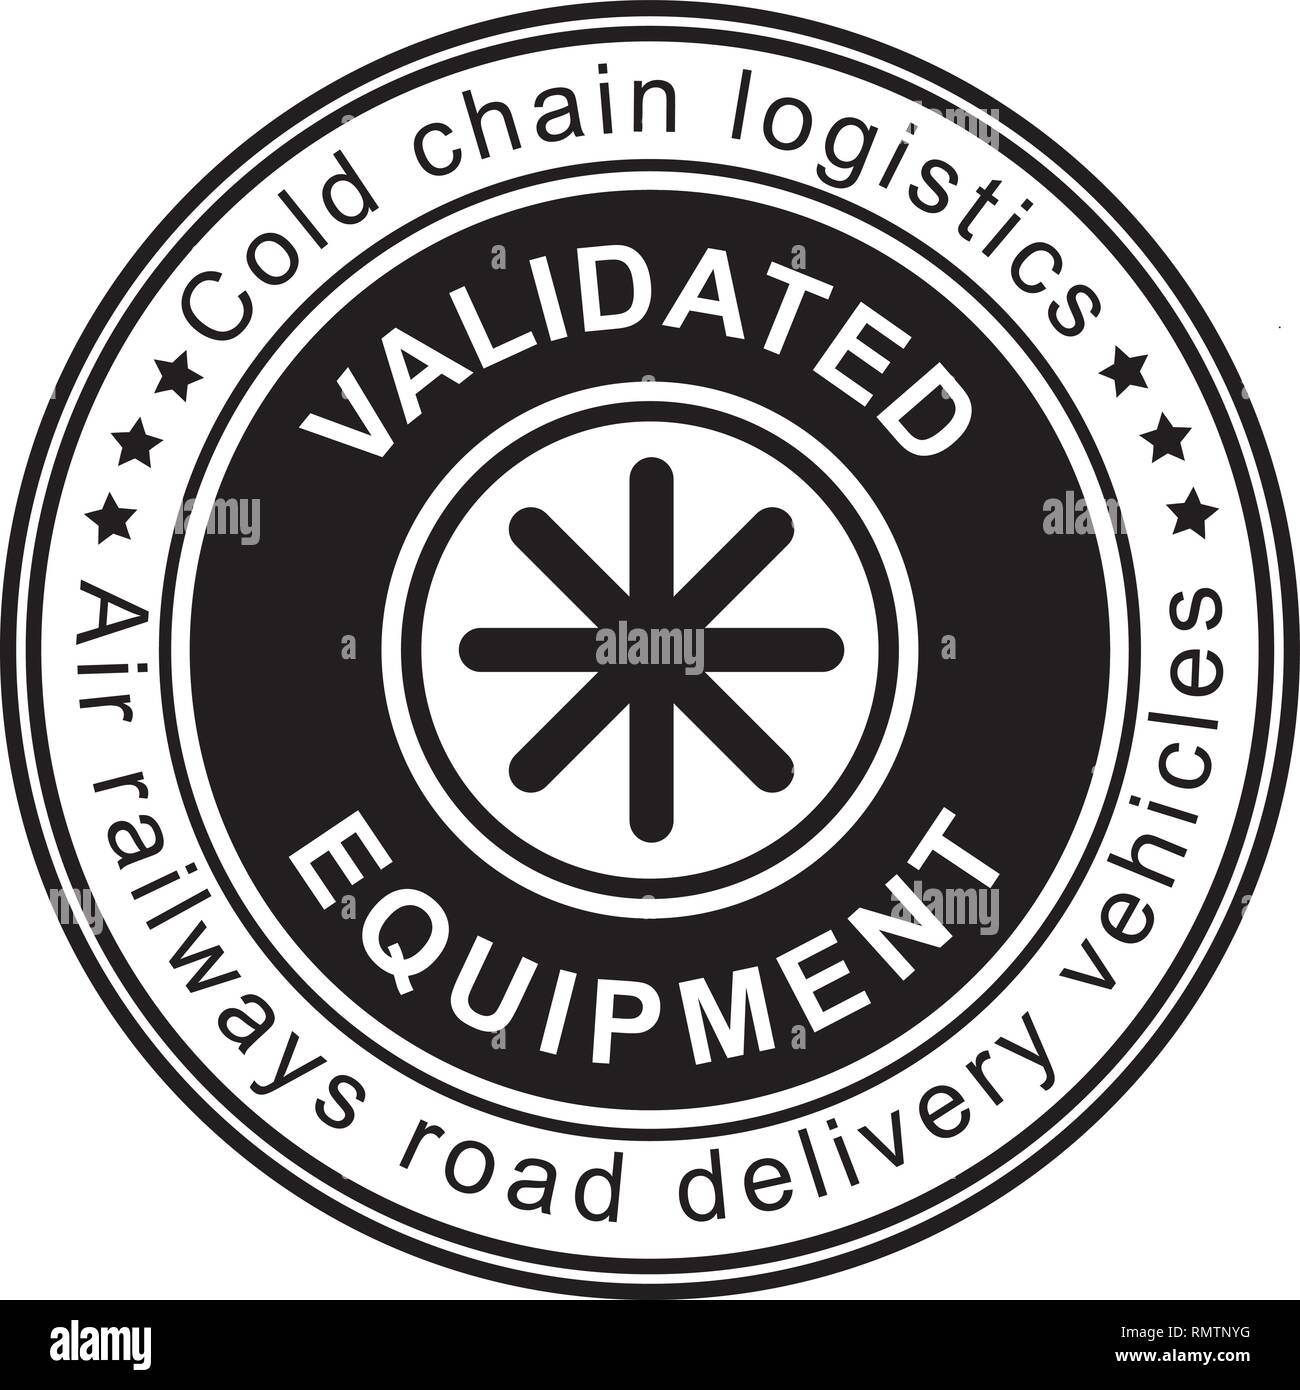 Valideted Equipment stamp on white background. Cold chain logistics. Stock Vector